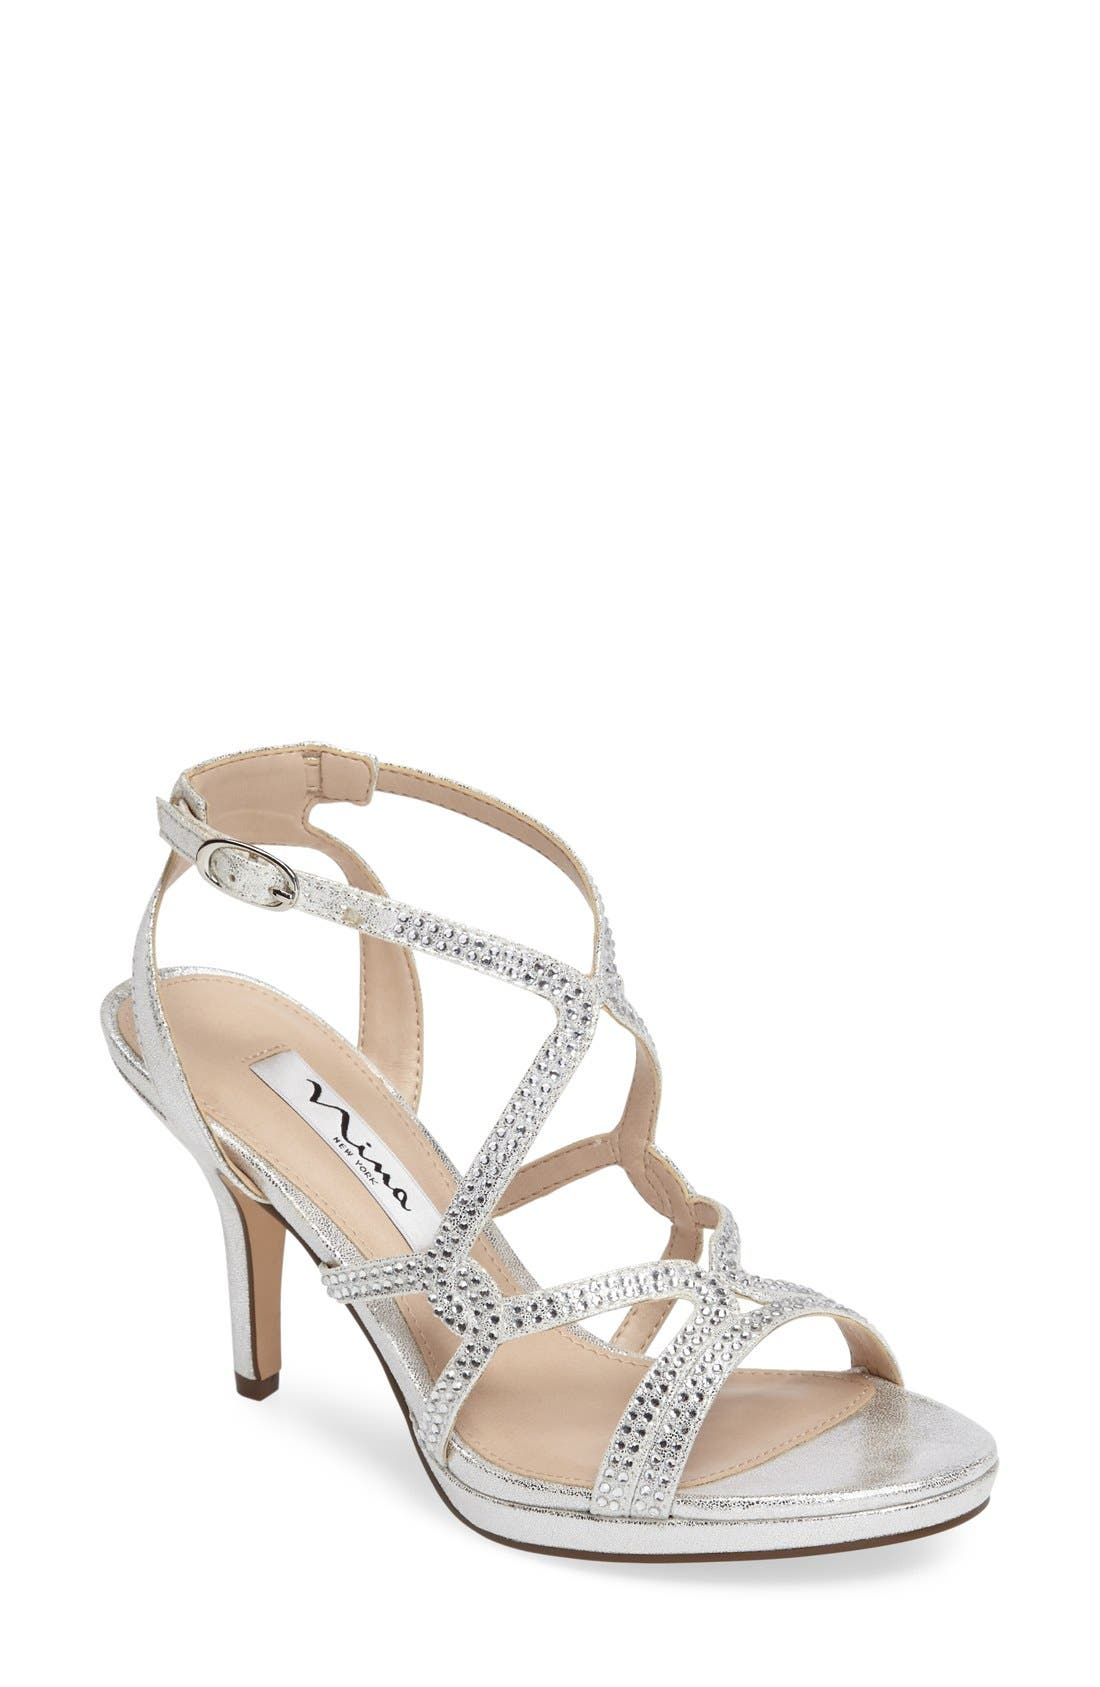 Varsha Crystal Embellished Evening Sandal,                             Main thumbnail 1, color,                             Silver Faux Suede